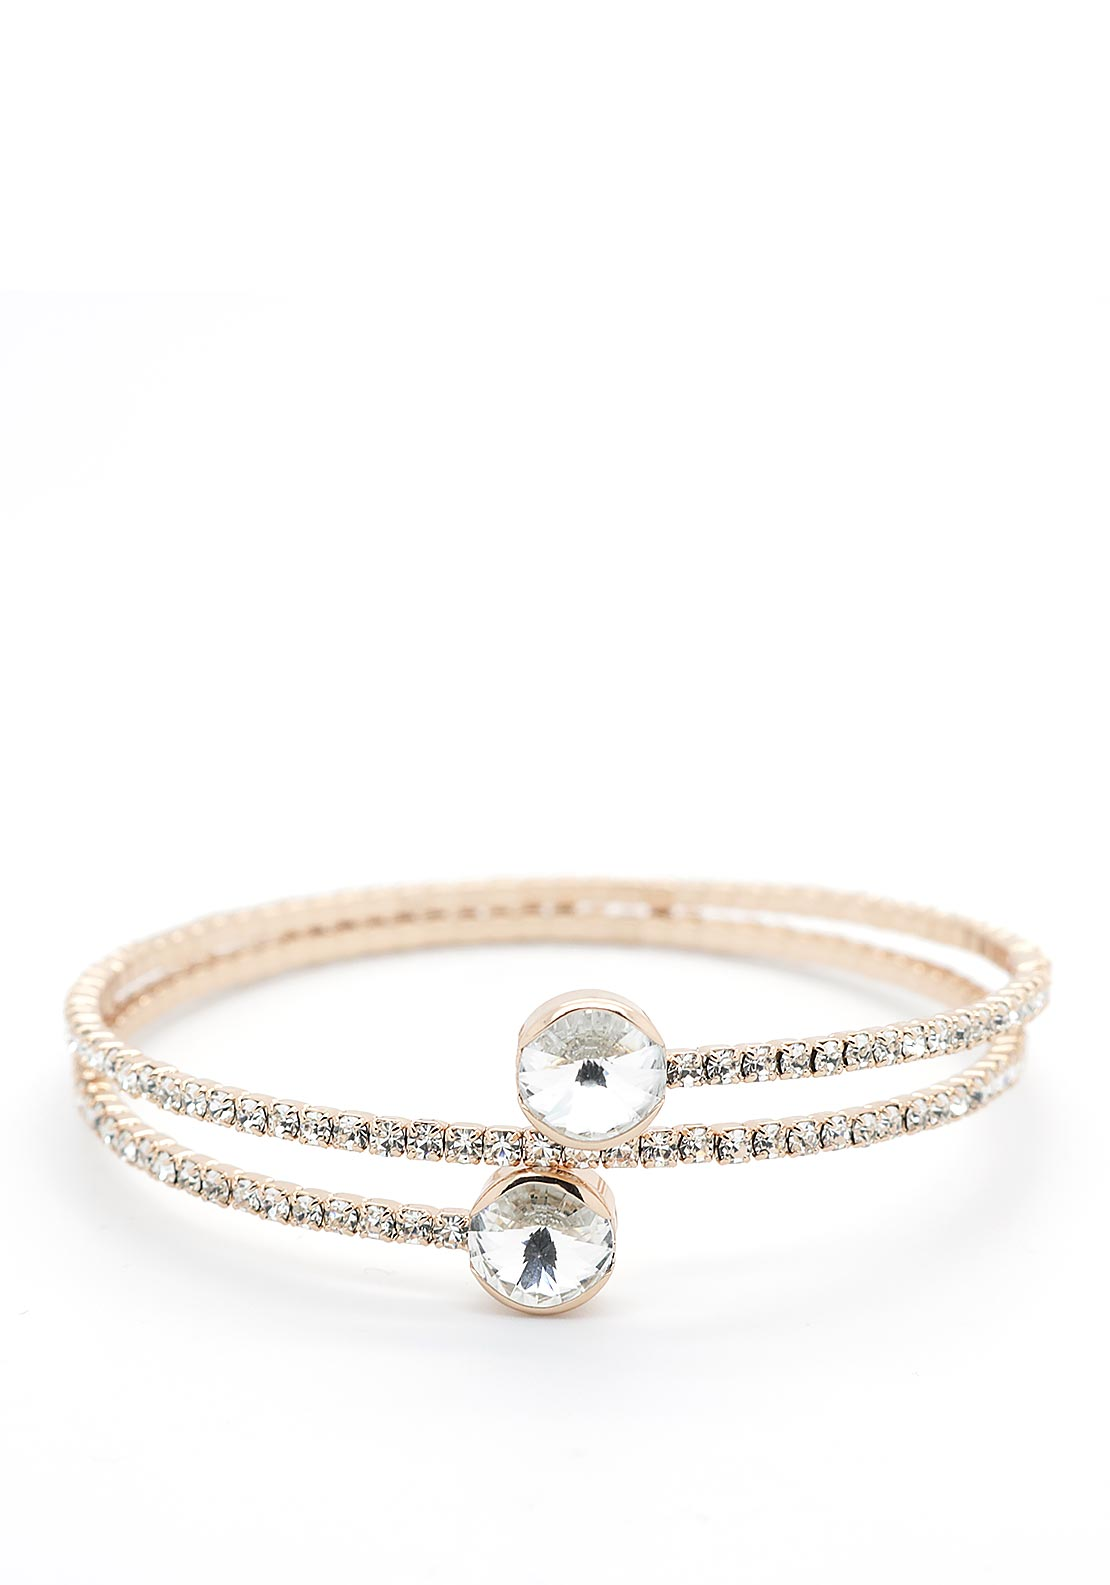 Absolute Crystal Wrap-Around Bracelet, Rose Gold